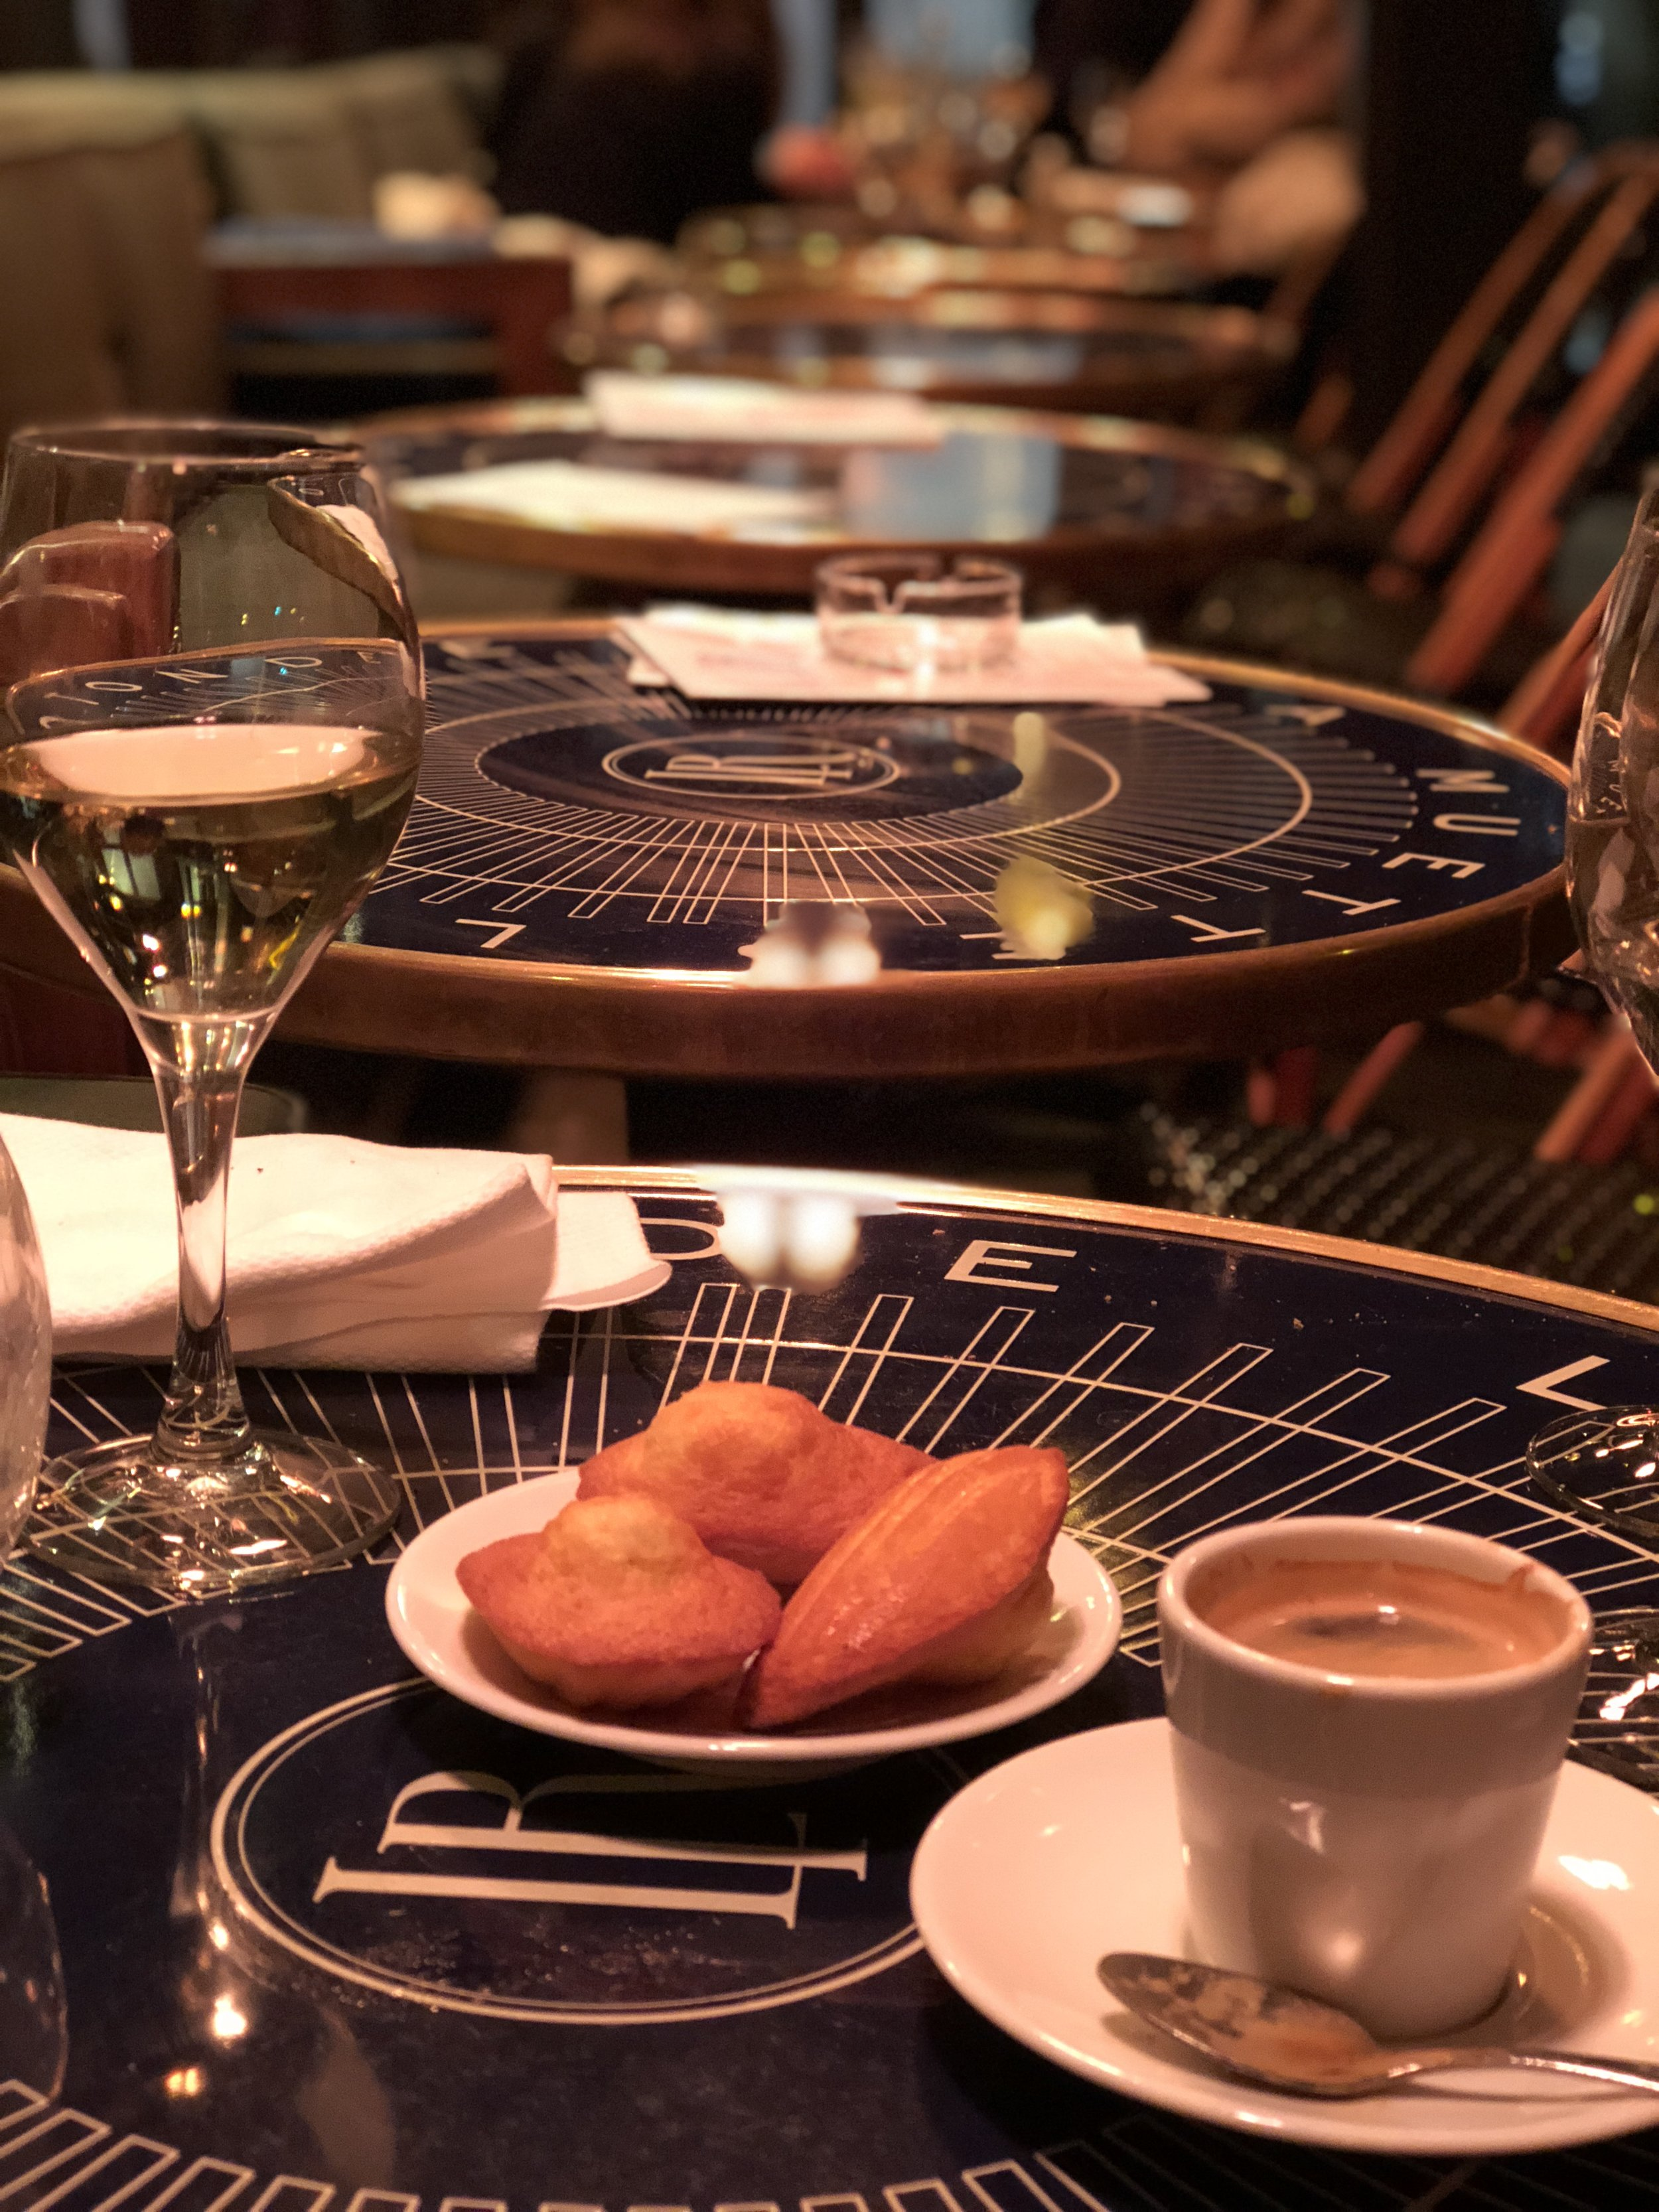 After-dinner coffee and house-made madelines at La Rotonde de la Muette.